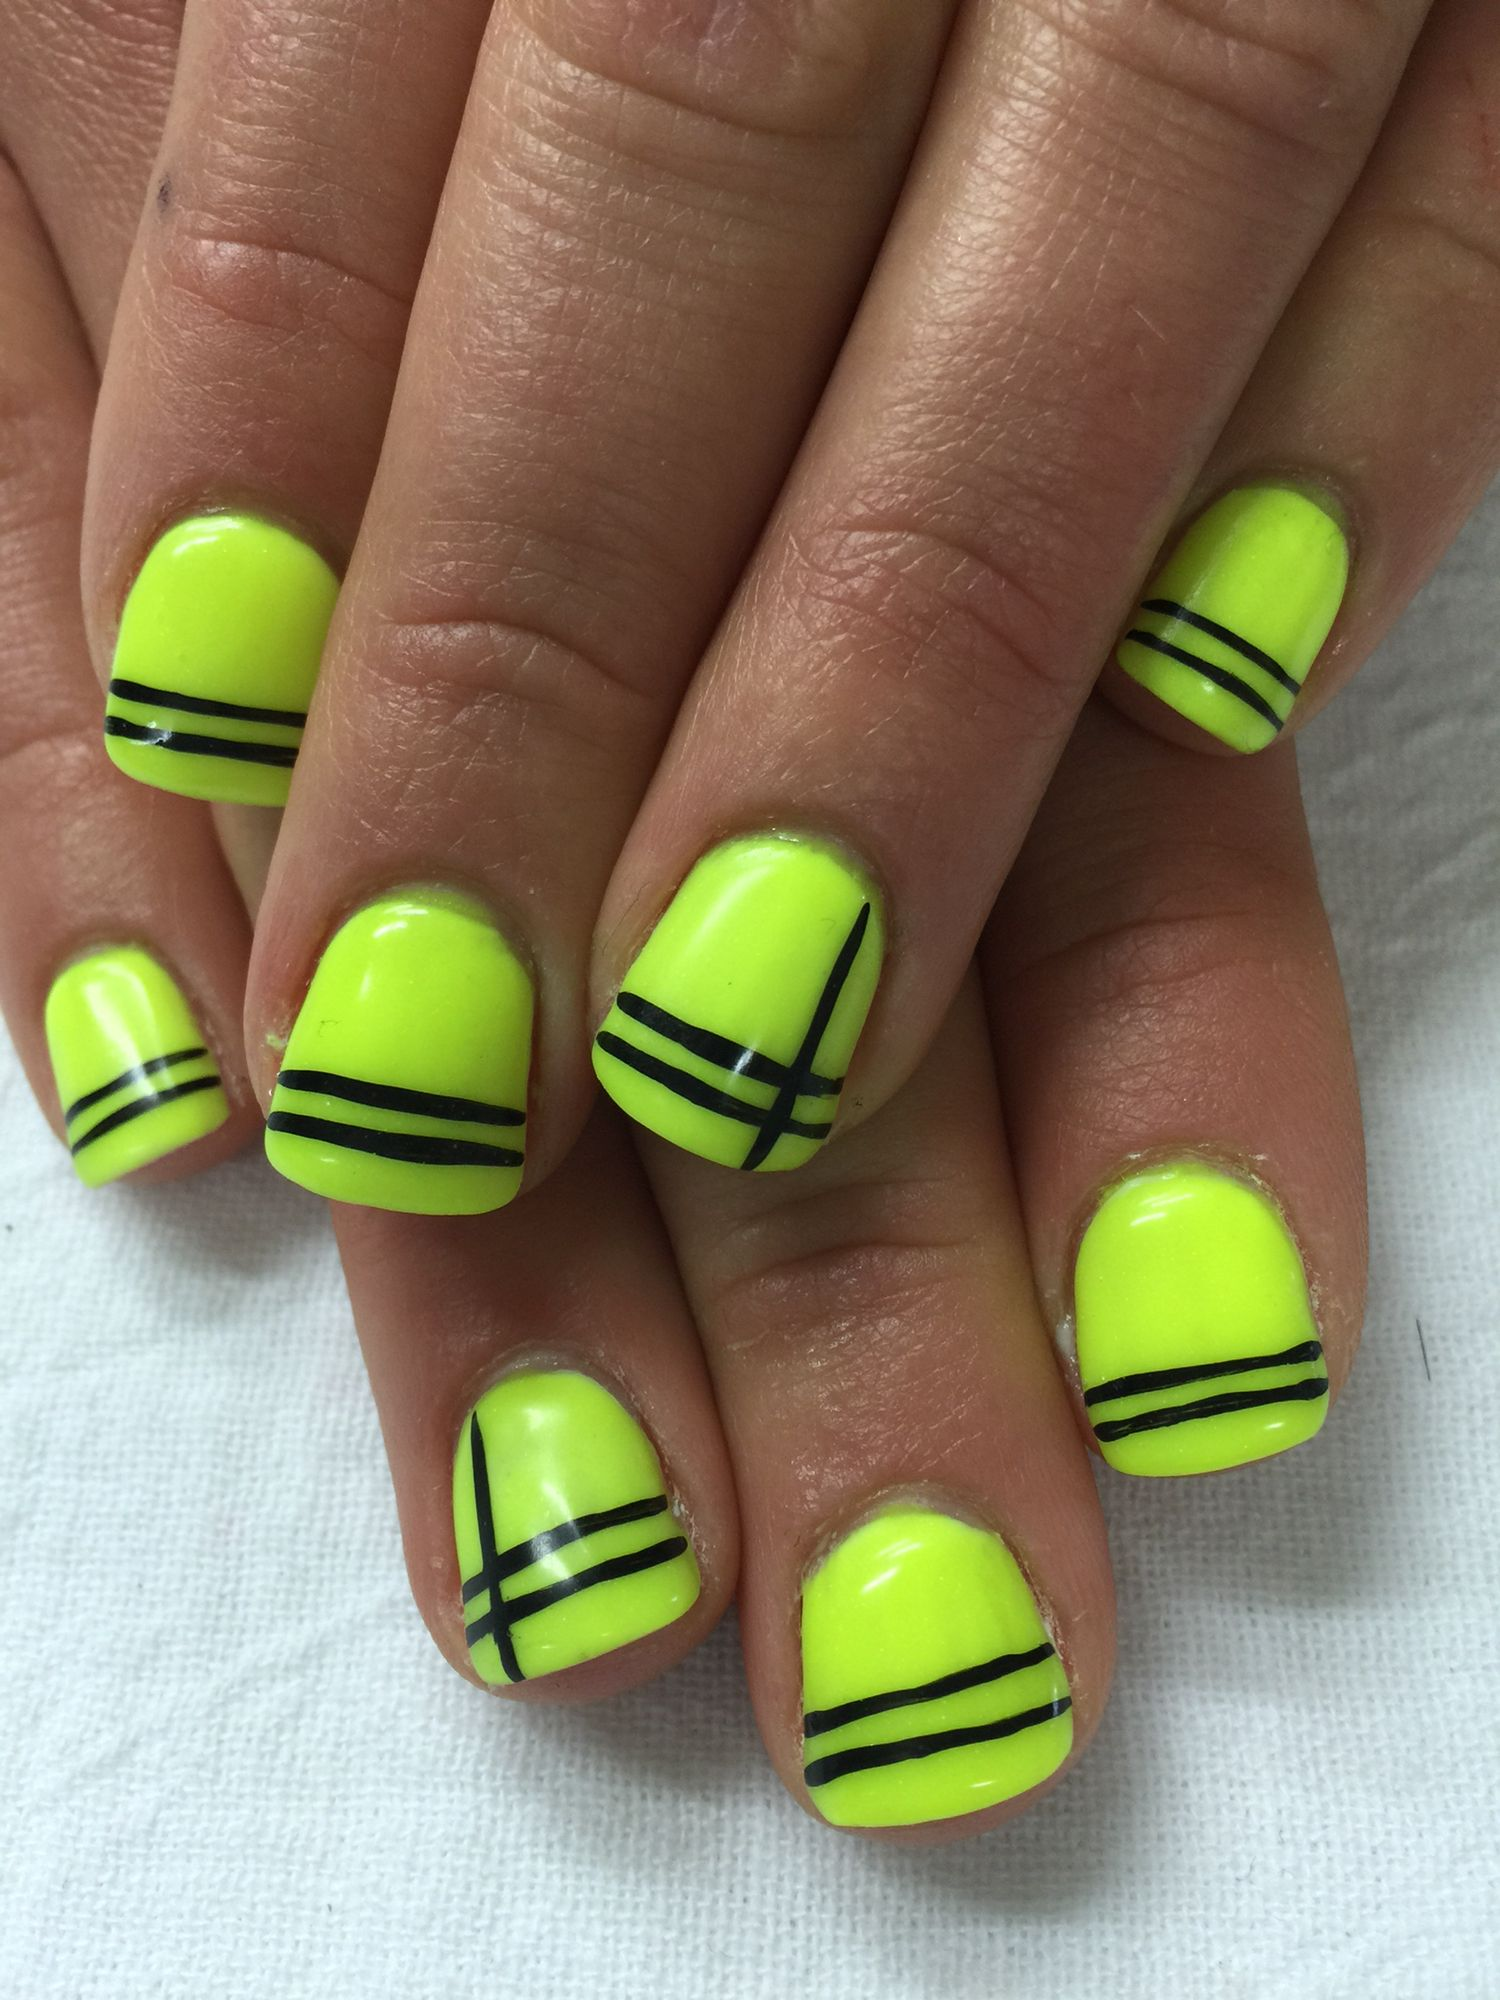 Neon Glow In The Dark Yellow Gel Nails With Black Line Accents